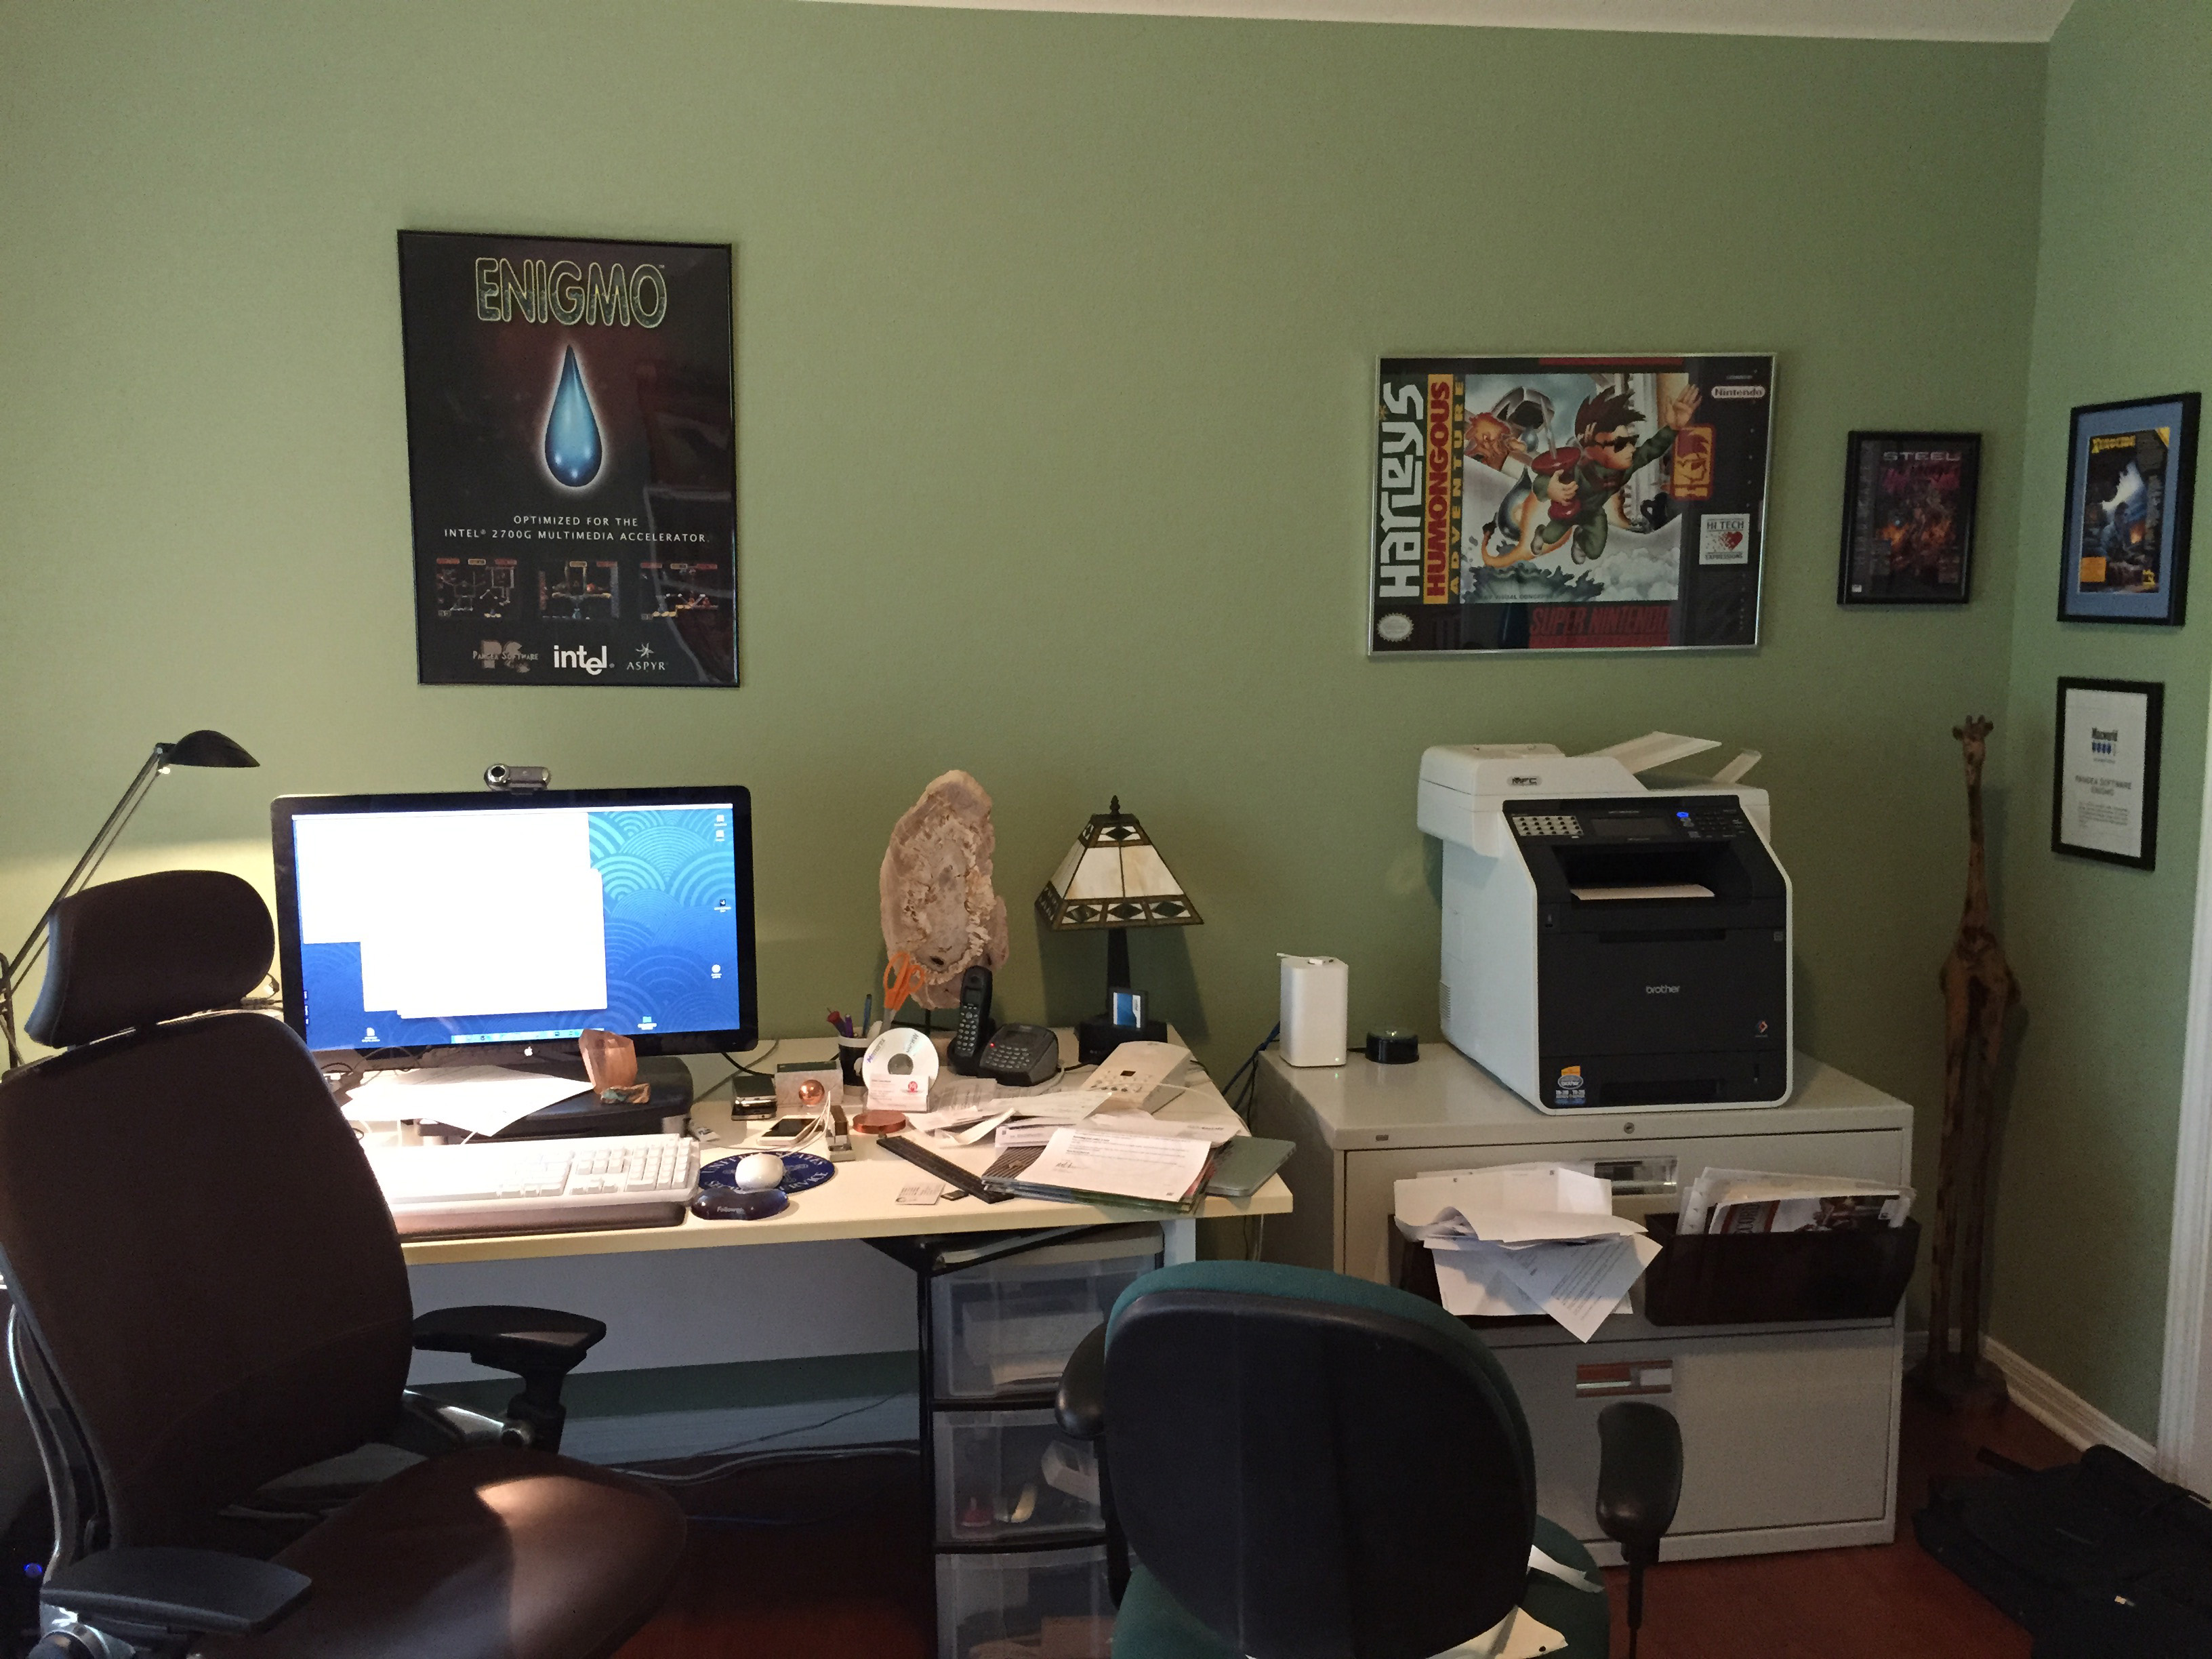 Brian's office proudly displays the Harley poster